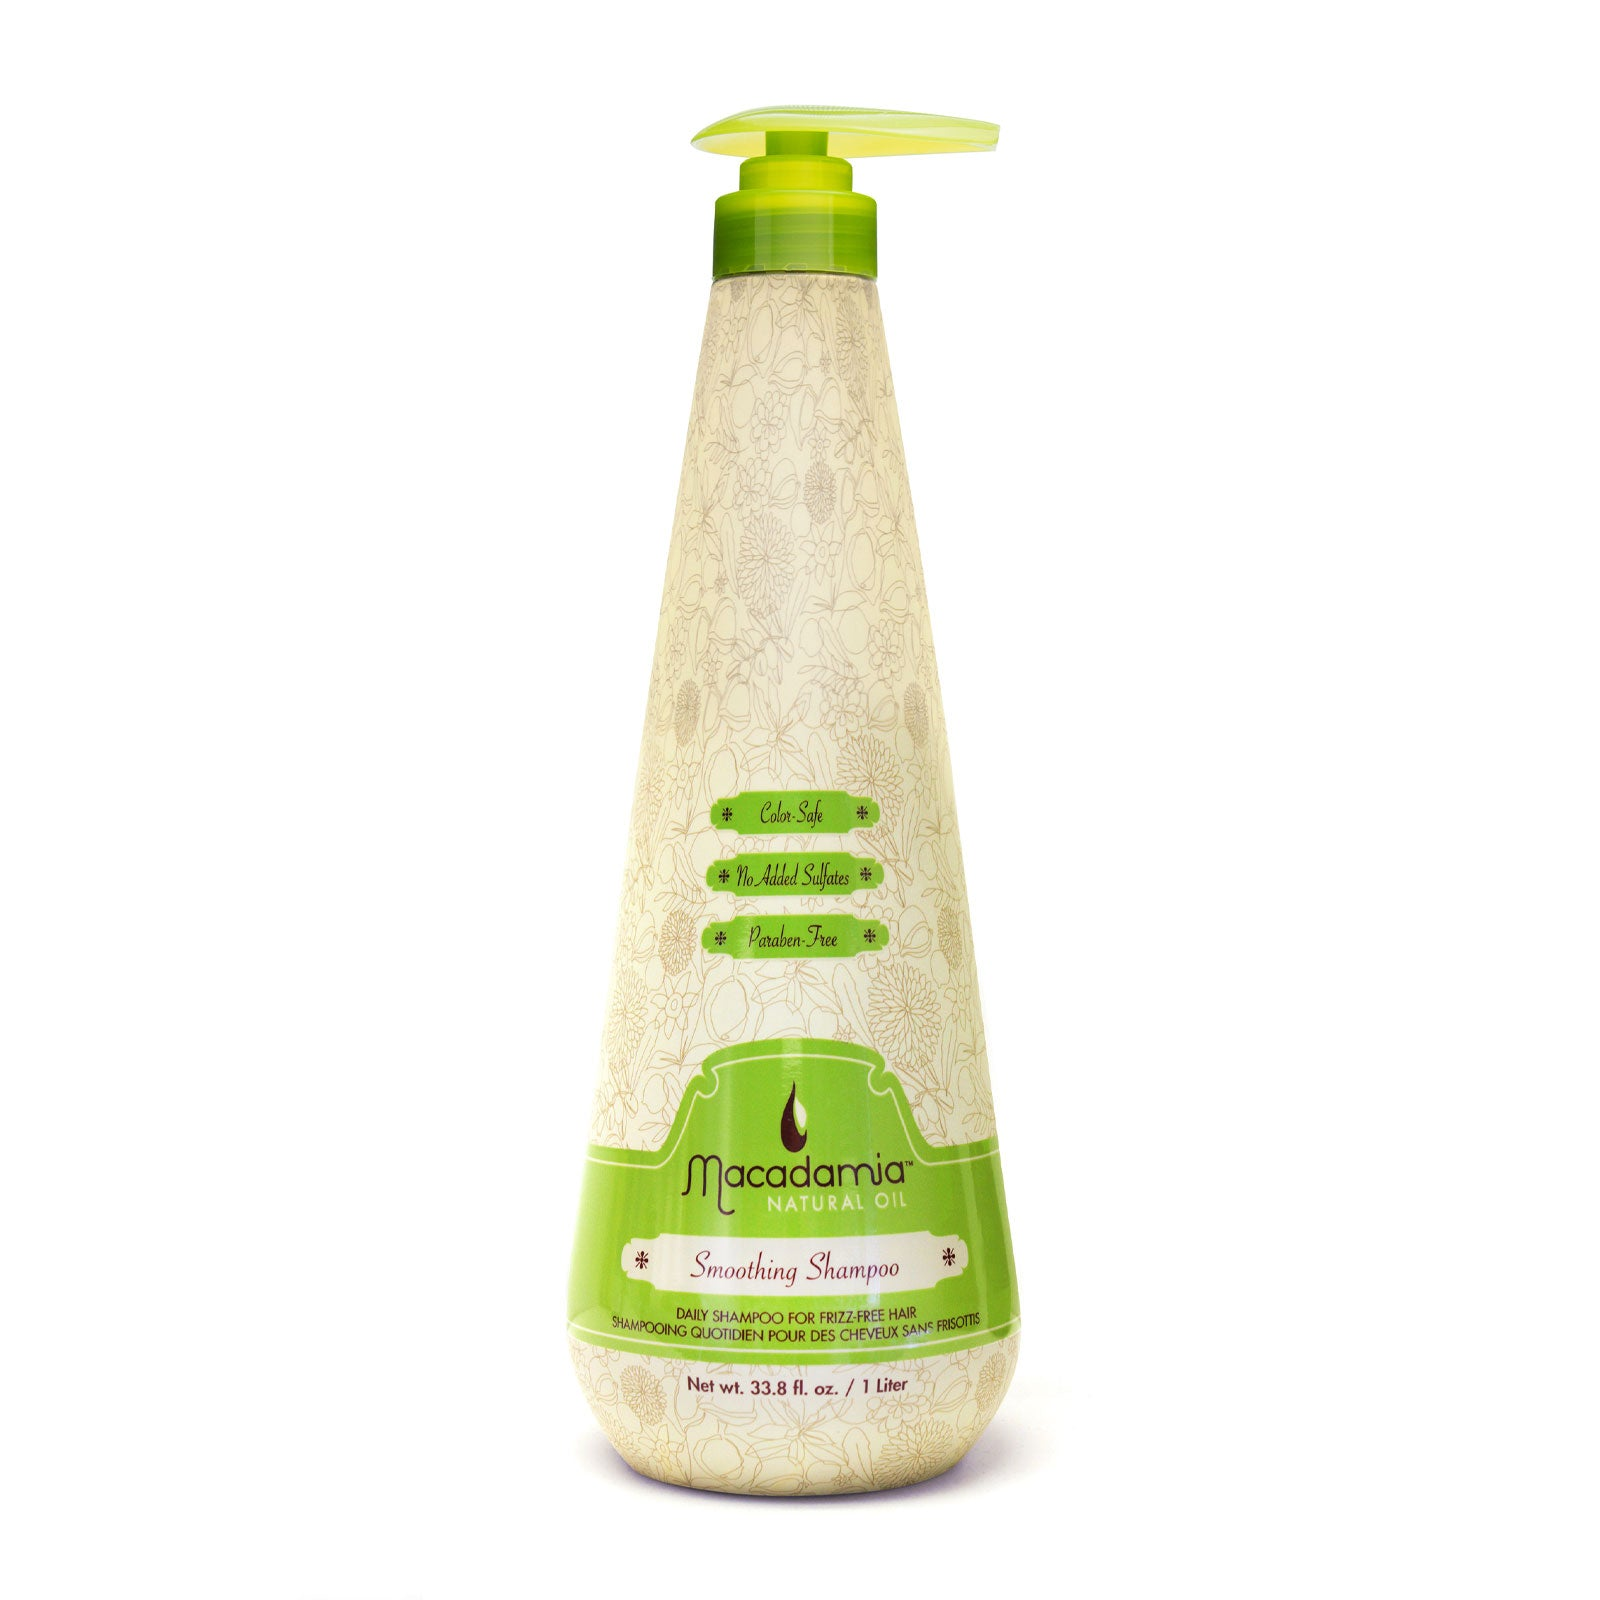 Macadamia Natural Oil Smoothing Shampoo 1000ml